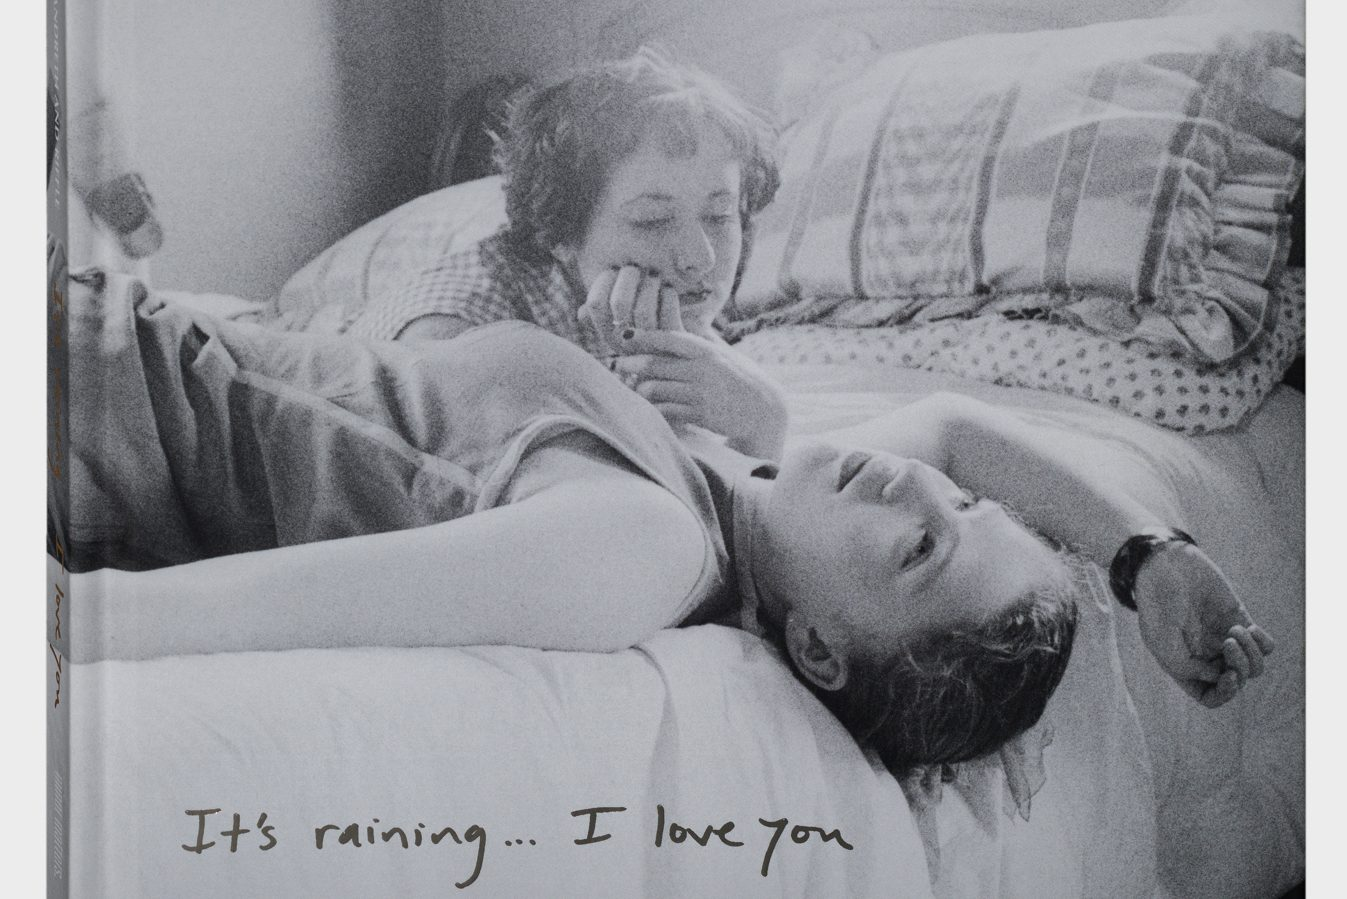 """Photo of the cover of a book, on which two women are lying on a bed—one gazing into space, the other gazing at the one. The title """"It's raining ... I love you"""" is written below."""